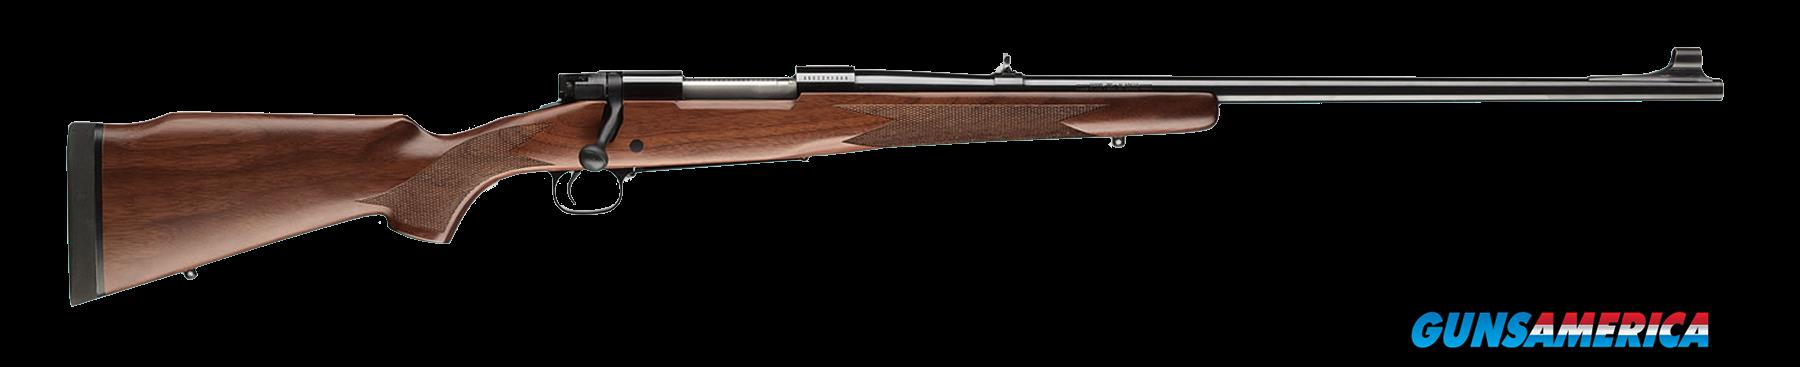 "Winchester Guns 535205128 70 Alaskan Bolt 30-06 Springfield 25"" 3+1 Walnut Stk Blued  Guns > Rifles > W Misc Rifles"